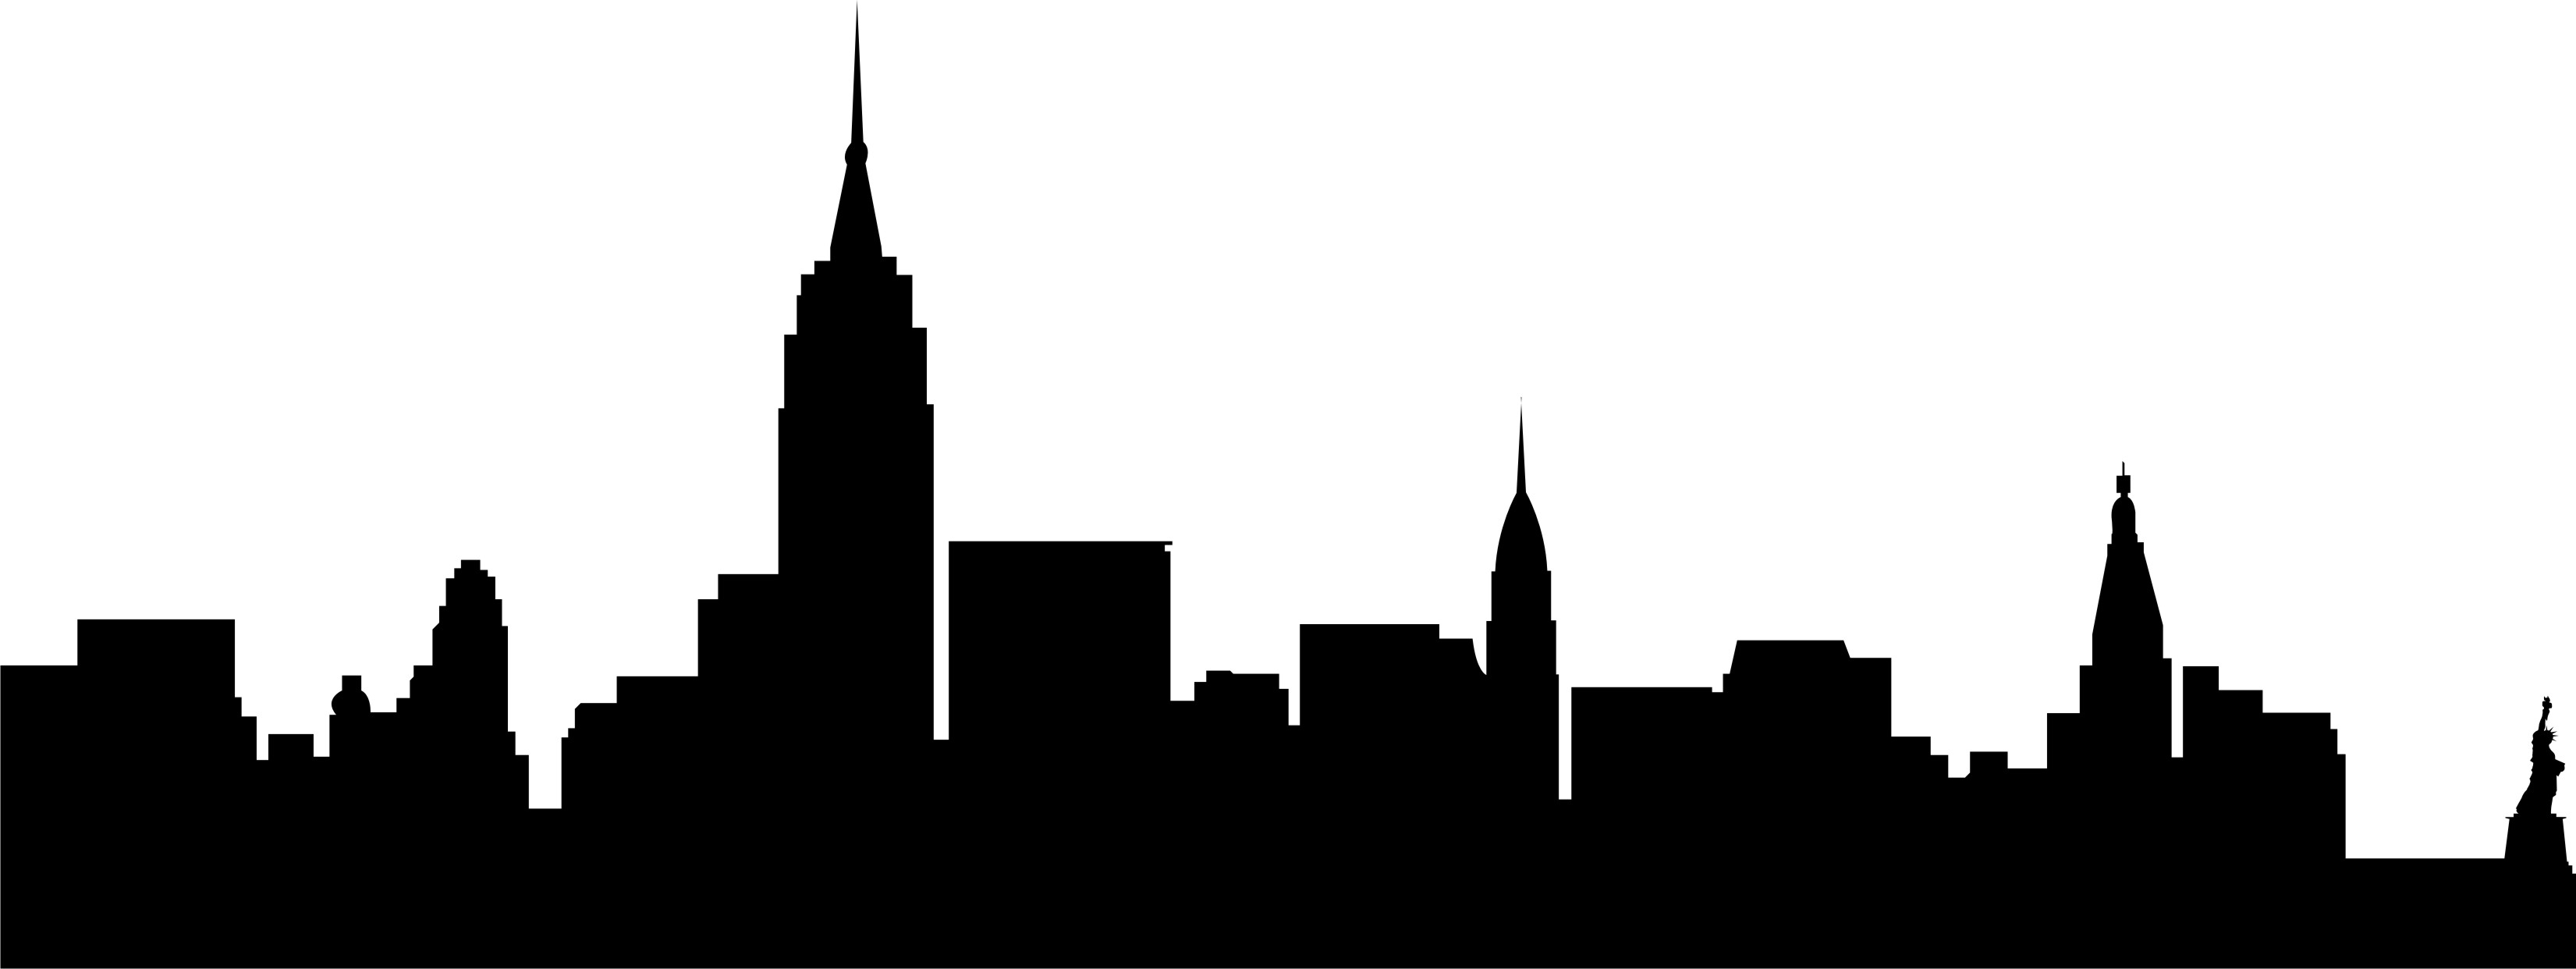 Images For Gt New York Skyline Black And White Silhouette